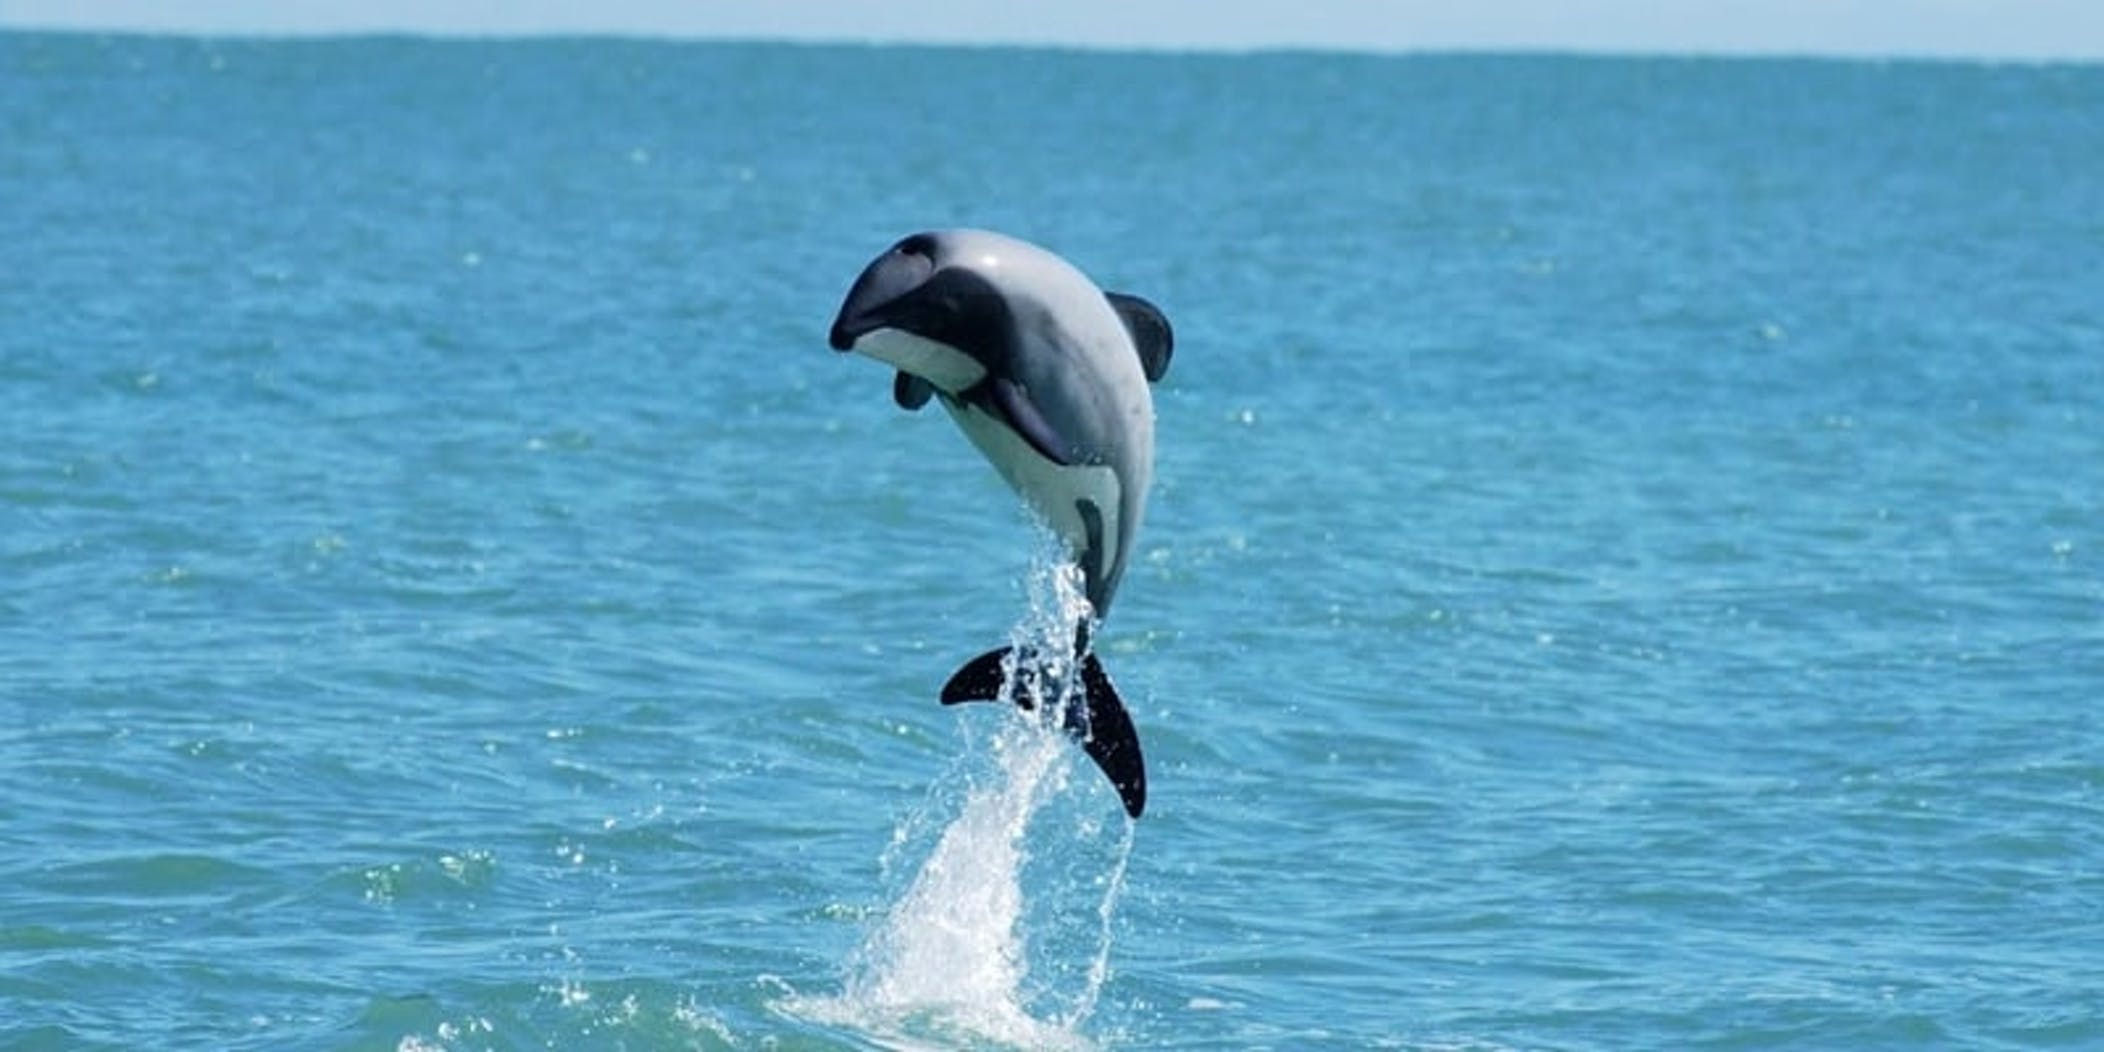 Hector's dolphin project